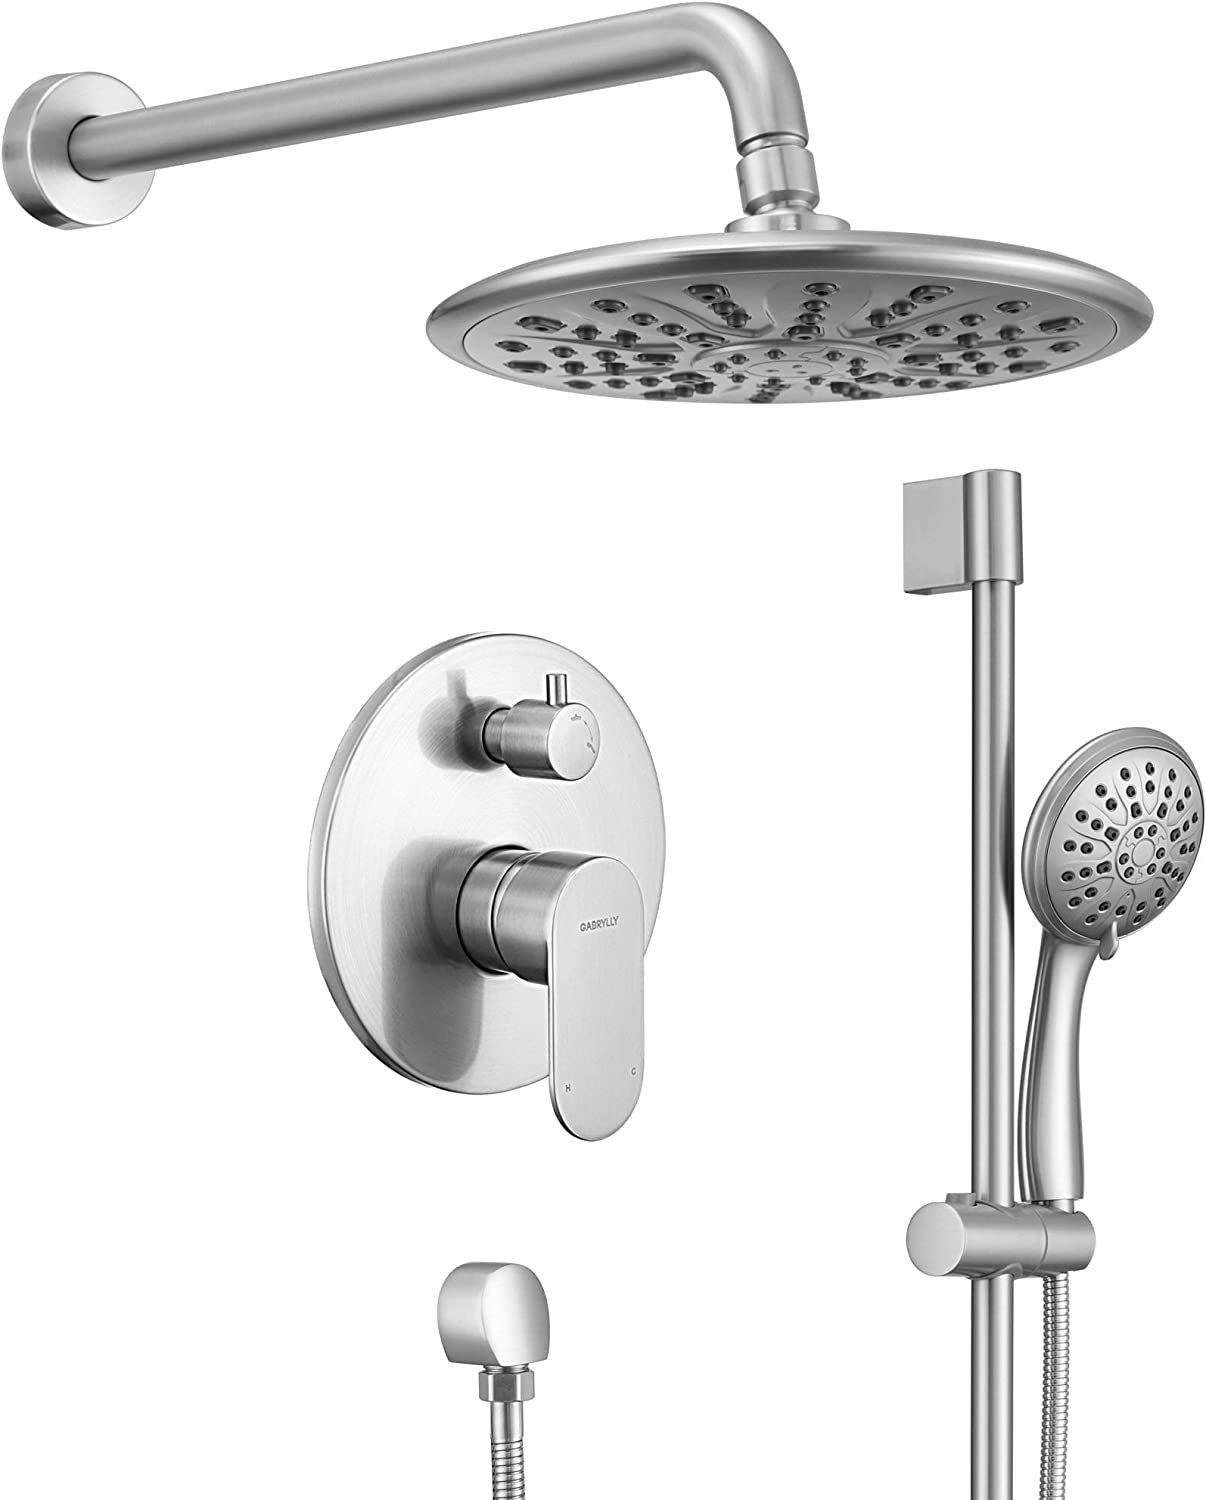 Color : A JYDQM 1pc Adjustable Bathroom Anti Splash Shower Faucet Head Nozzle Faucets Kitchen Tap Water Saving Device Household Supplies